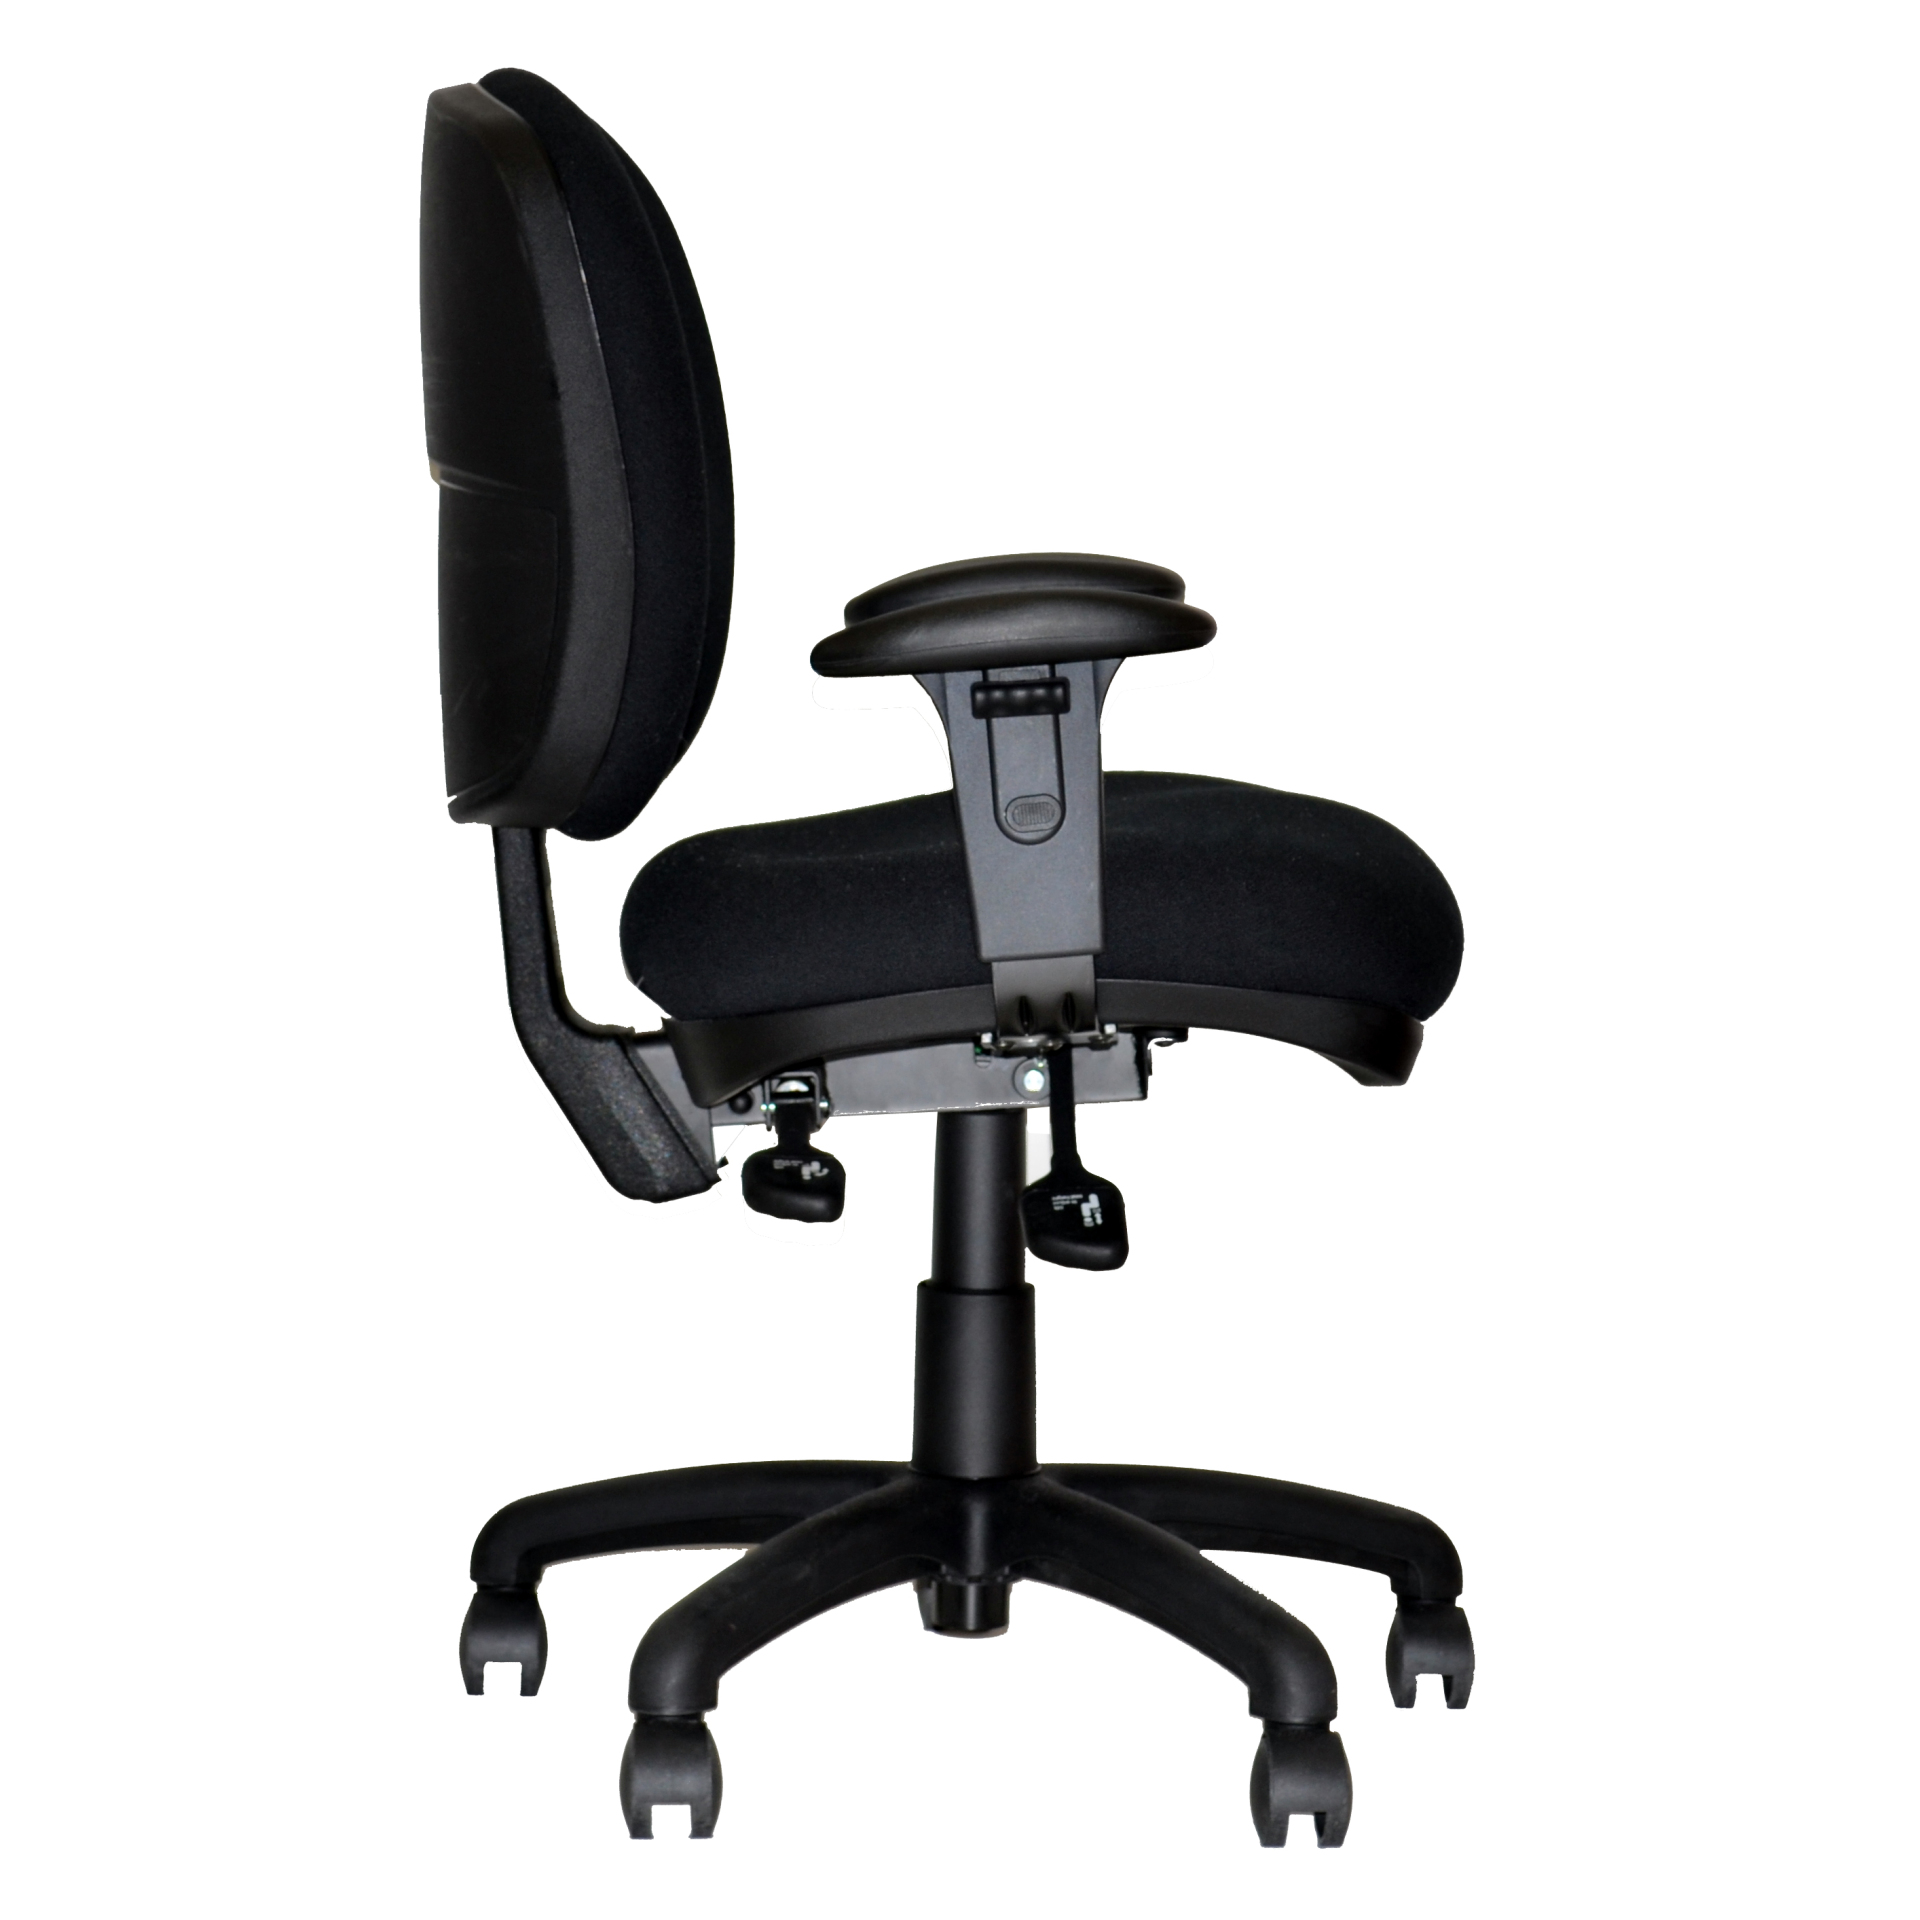 Direct Ergonomics | Sydney Office Furniture | Ergonomic Furniture | Ergonomic Seating | Executive and Task Seating | Ergonomic Chair | Ezone 480